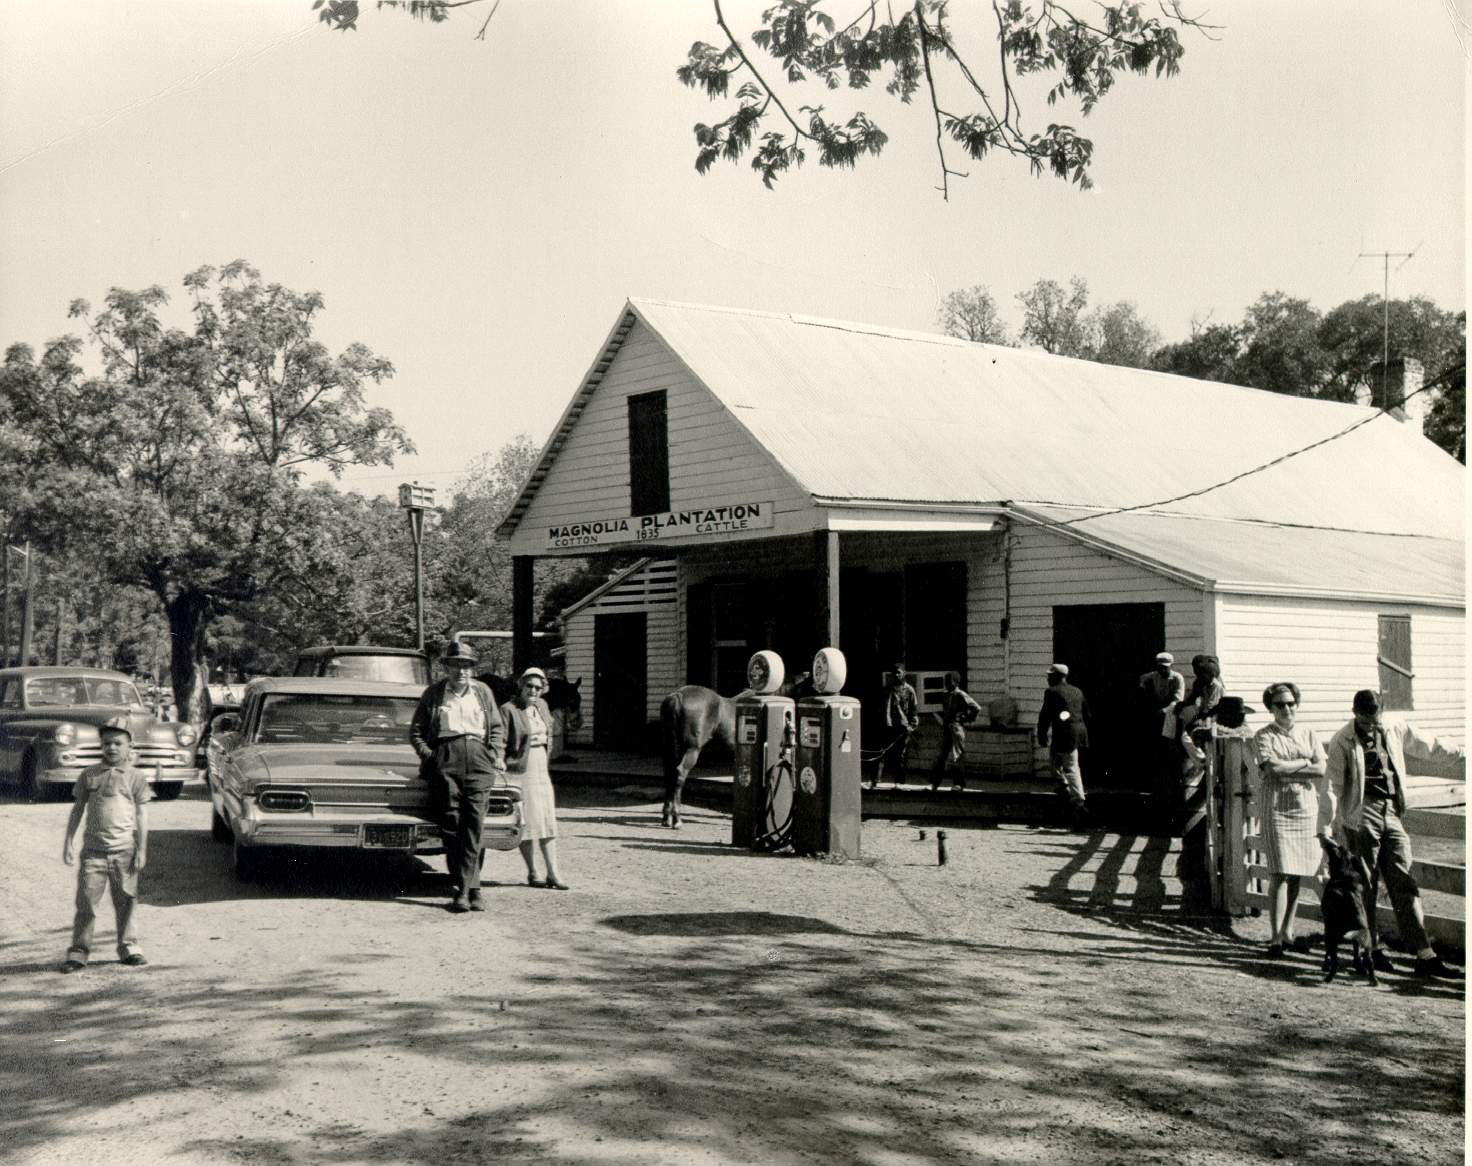 View of the store in operation 1962. People are gathered around a car in front of the store's gas pumps.